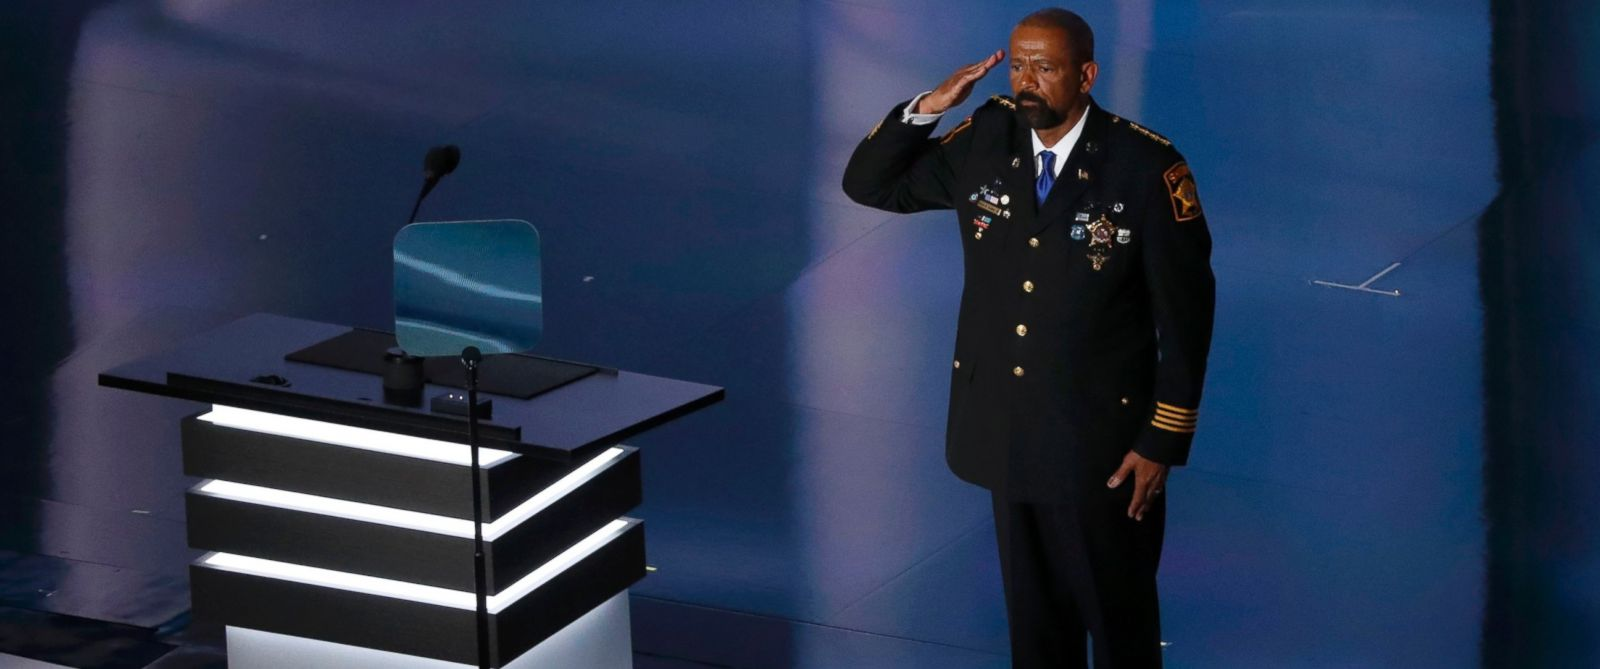 PHOTO: Milwaukee County Sheriff David Clarke salutes at the Republican National Convention in Cleveland, Ohio, July 18, 2016.